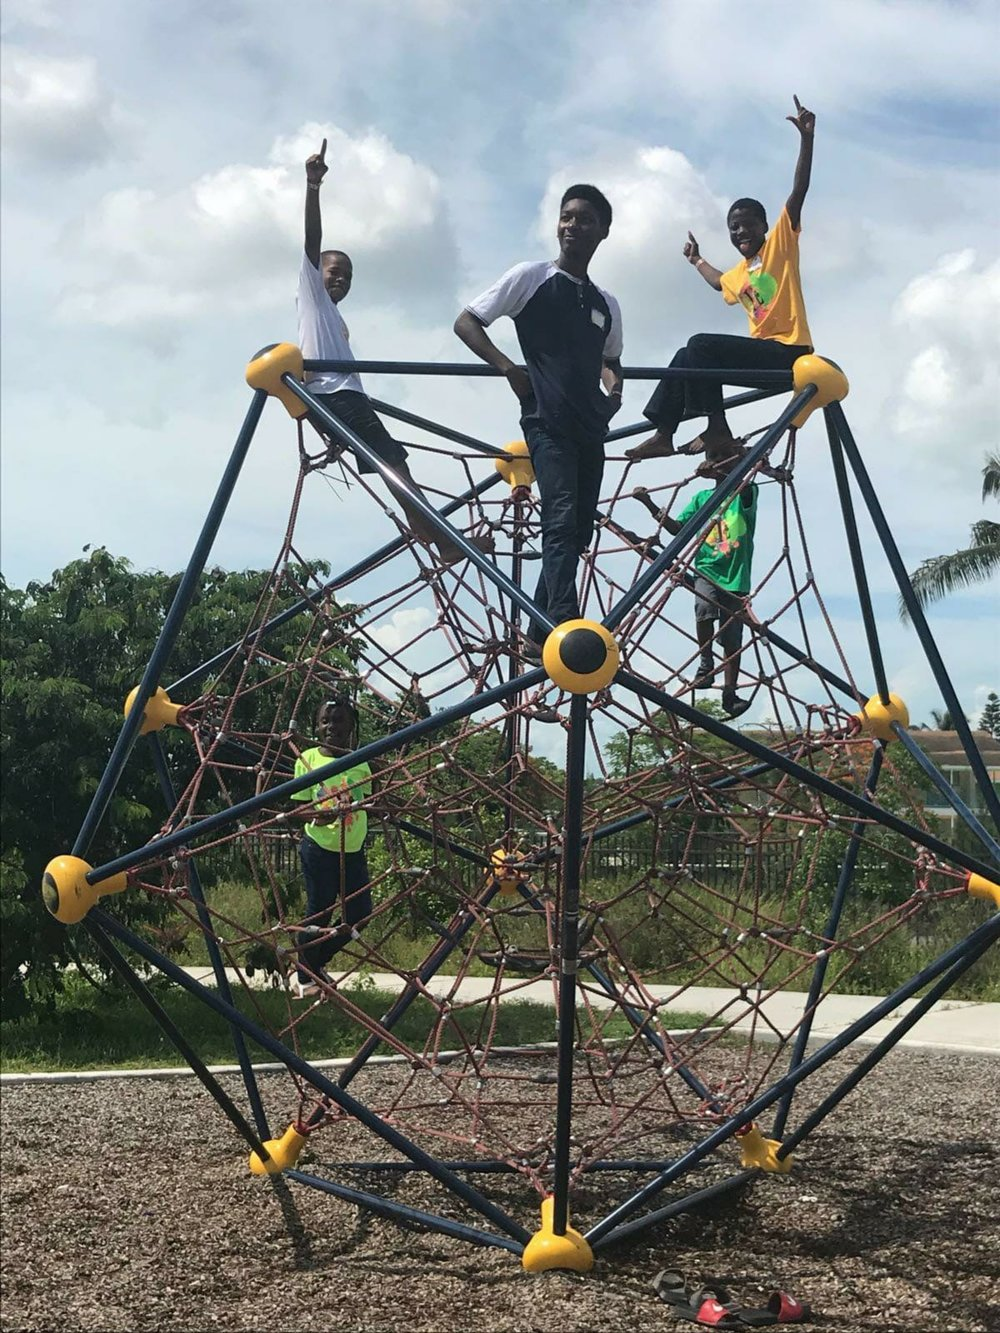 Students of Camp Lit: Big Pond gather for play time during lunch session on the jungle gym.